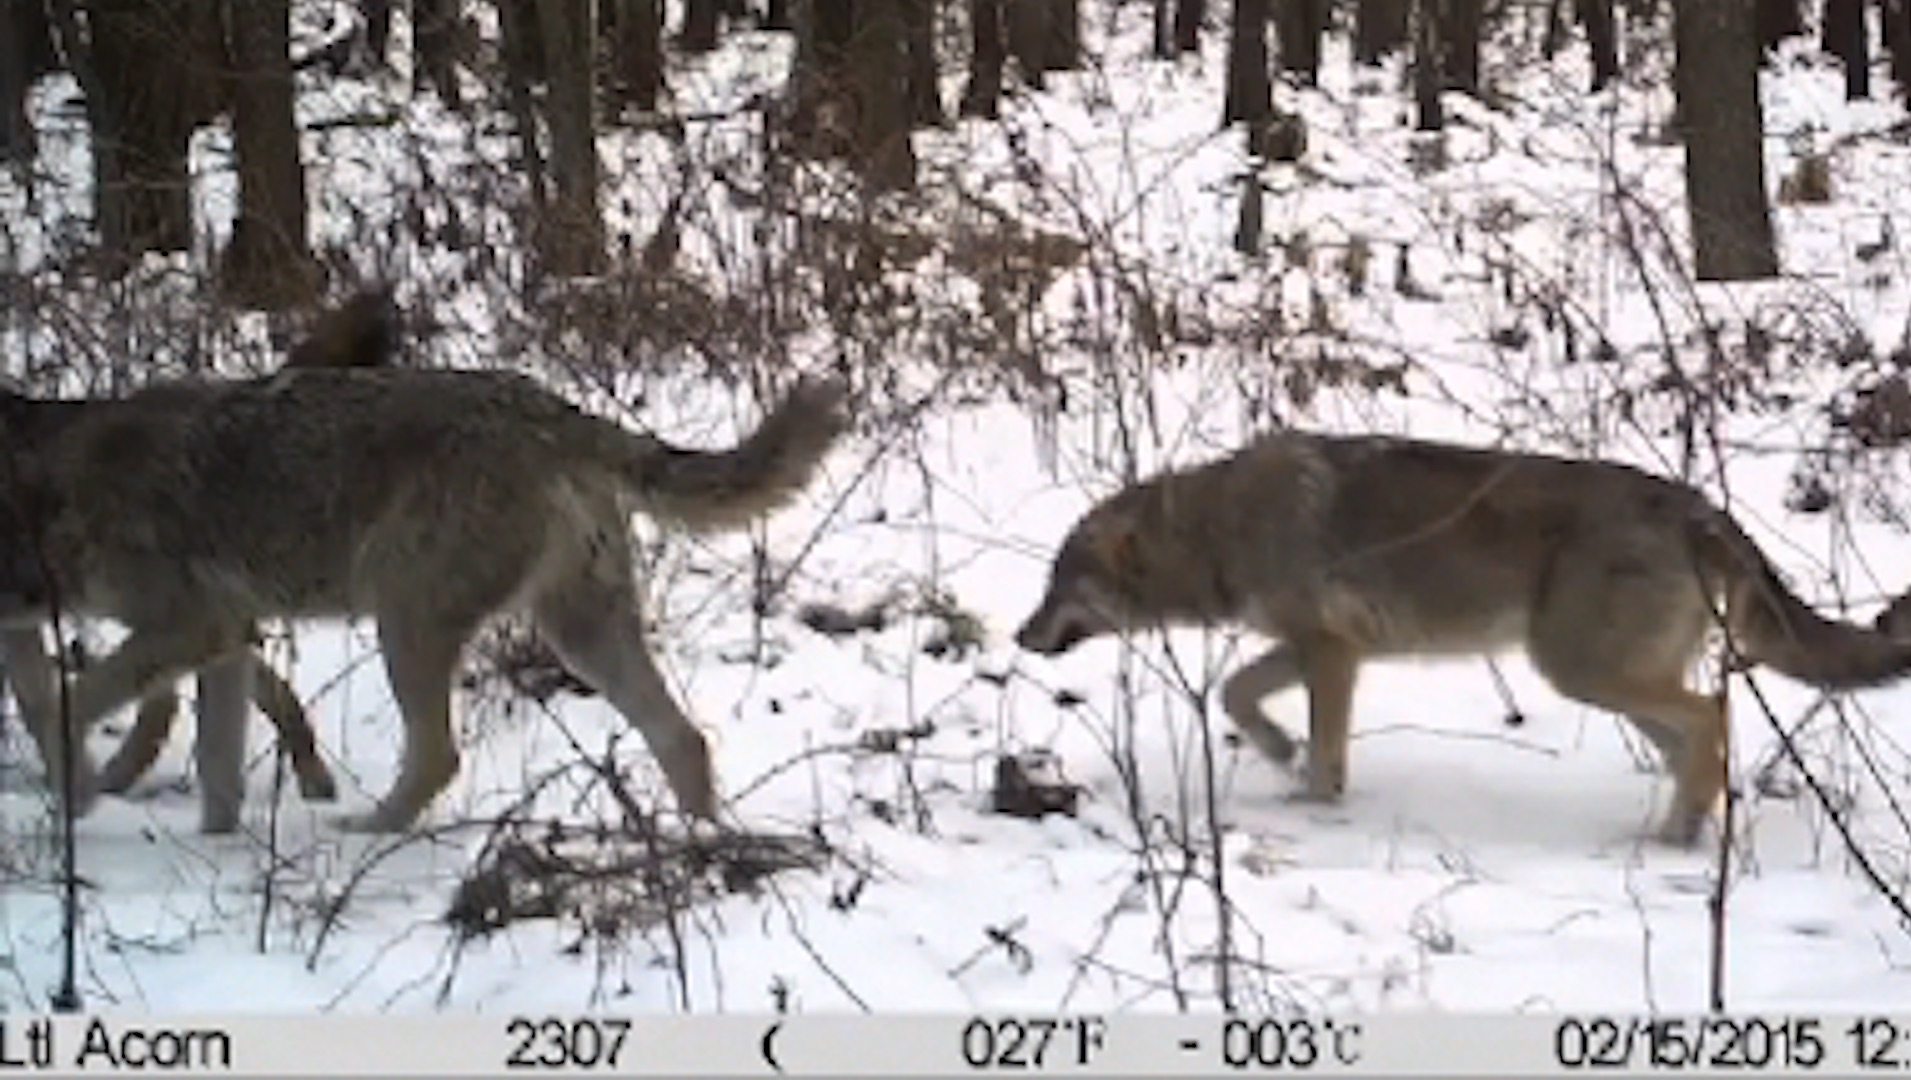 How cameras in the wild have transformed what we know about animals